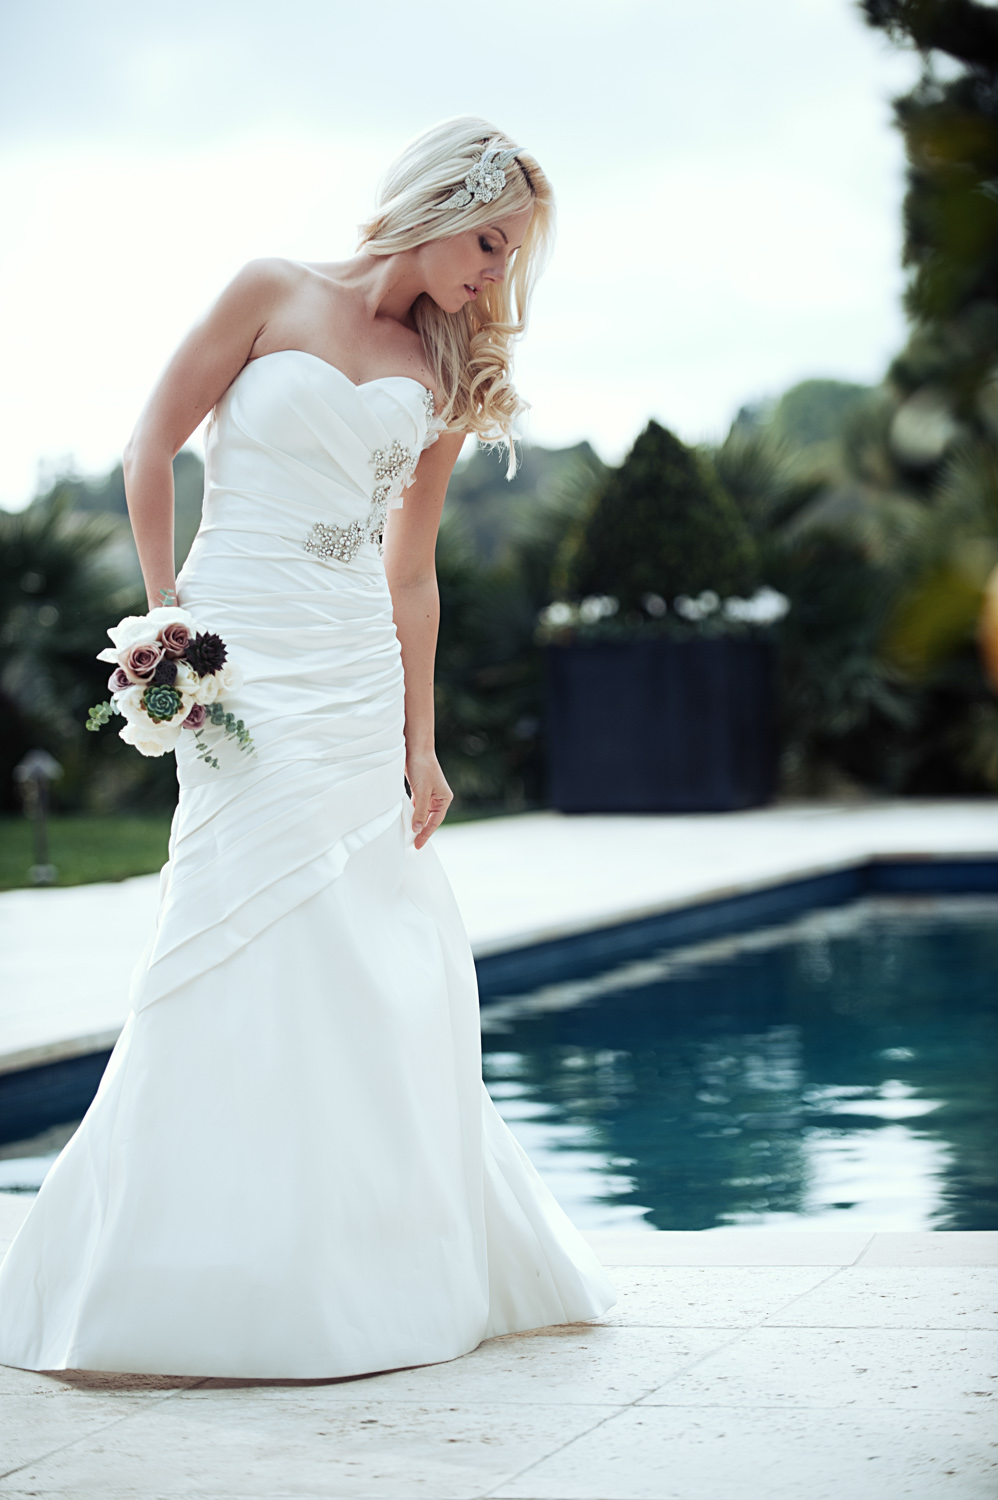 Bridal Fashion Photograhy 025.jpg